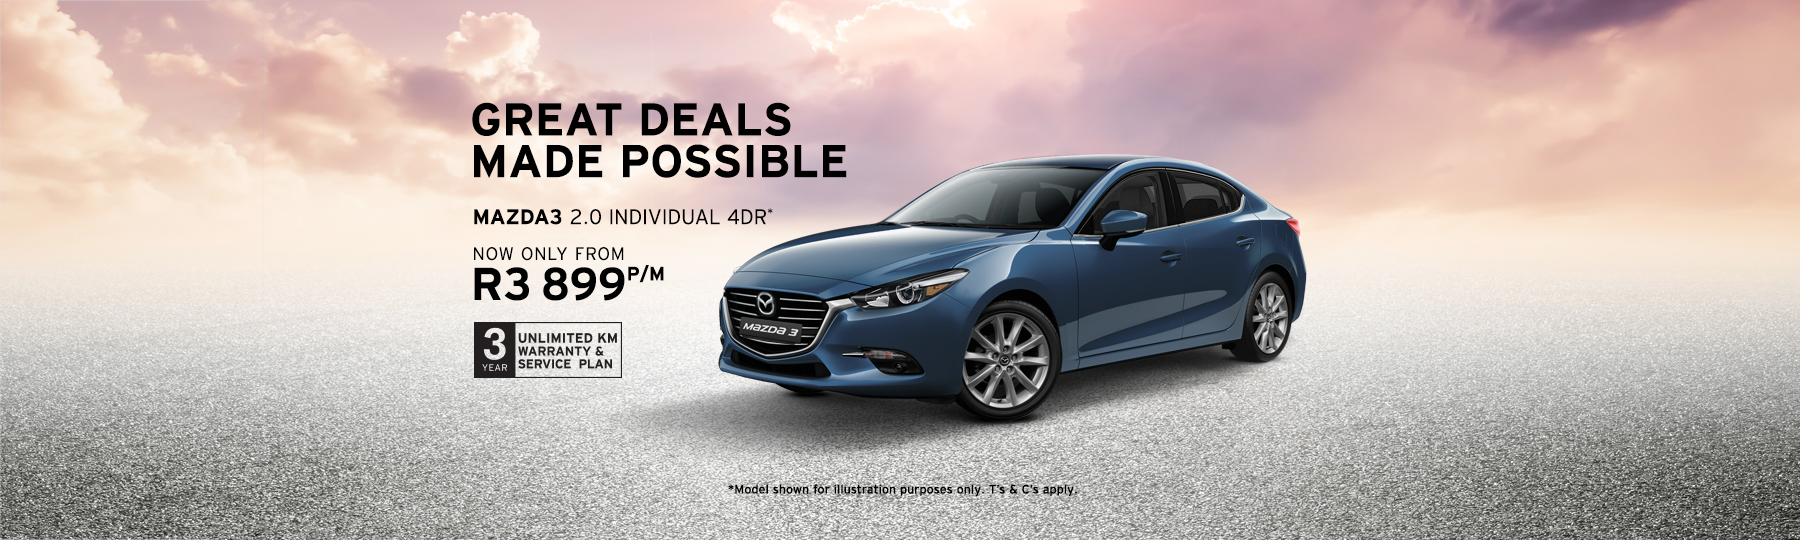 content/great-deals-made-possible-mazda3-2.html